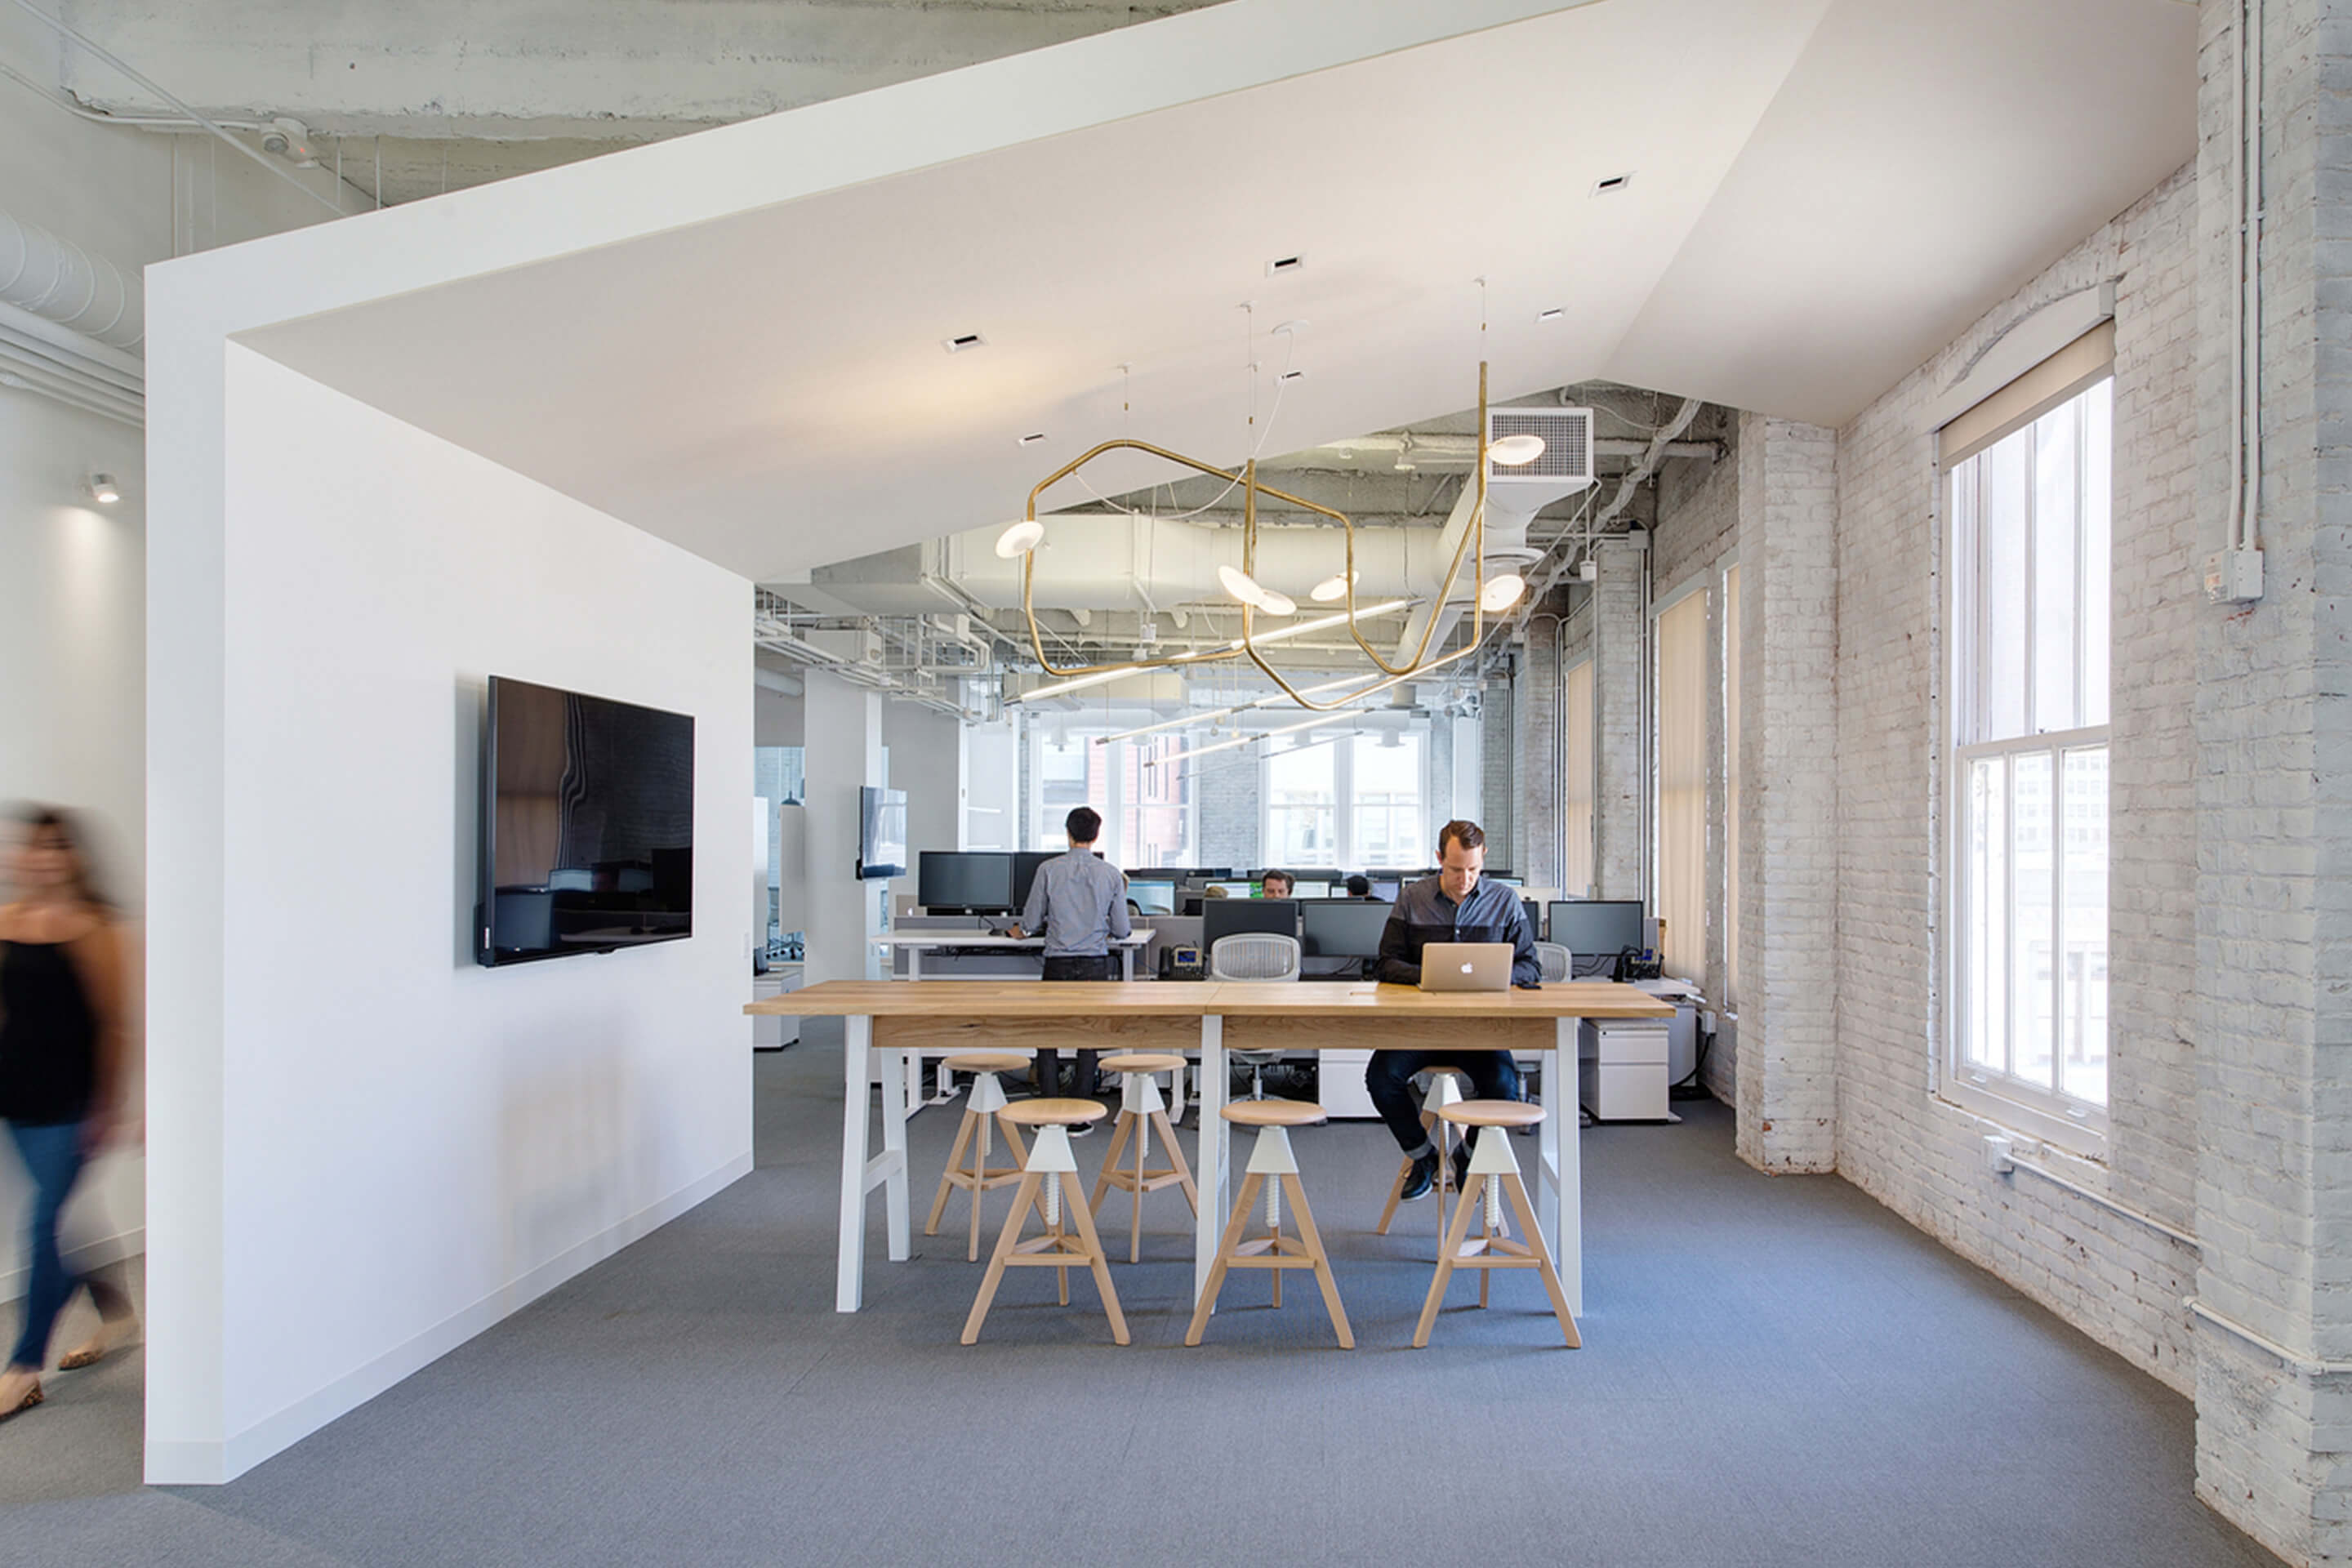 Squarespace — San Francisco, CA. Palindrome 6, mottled brass